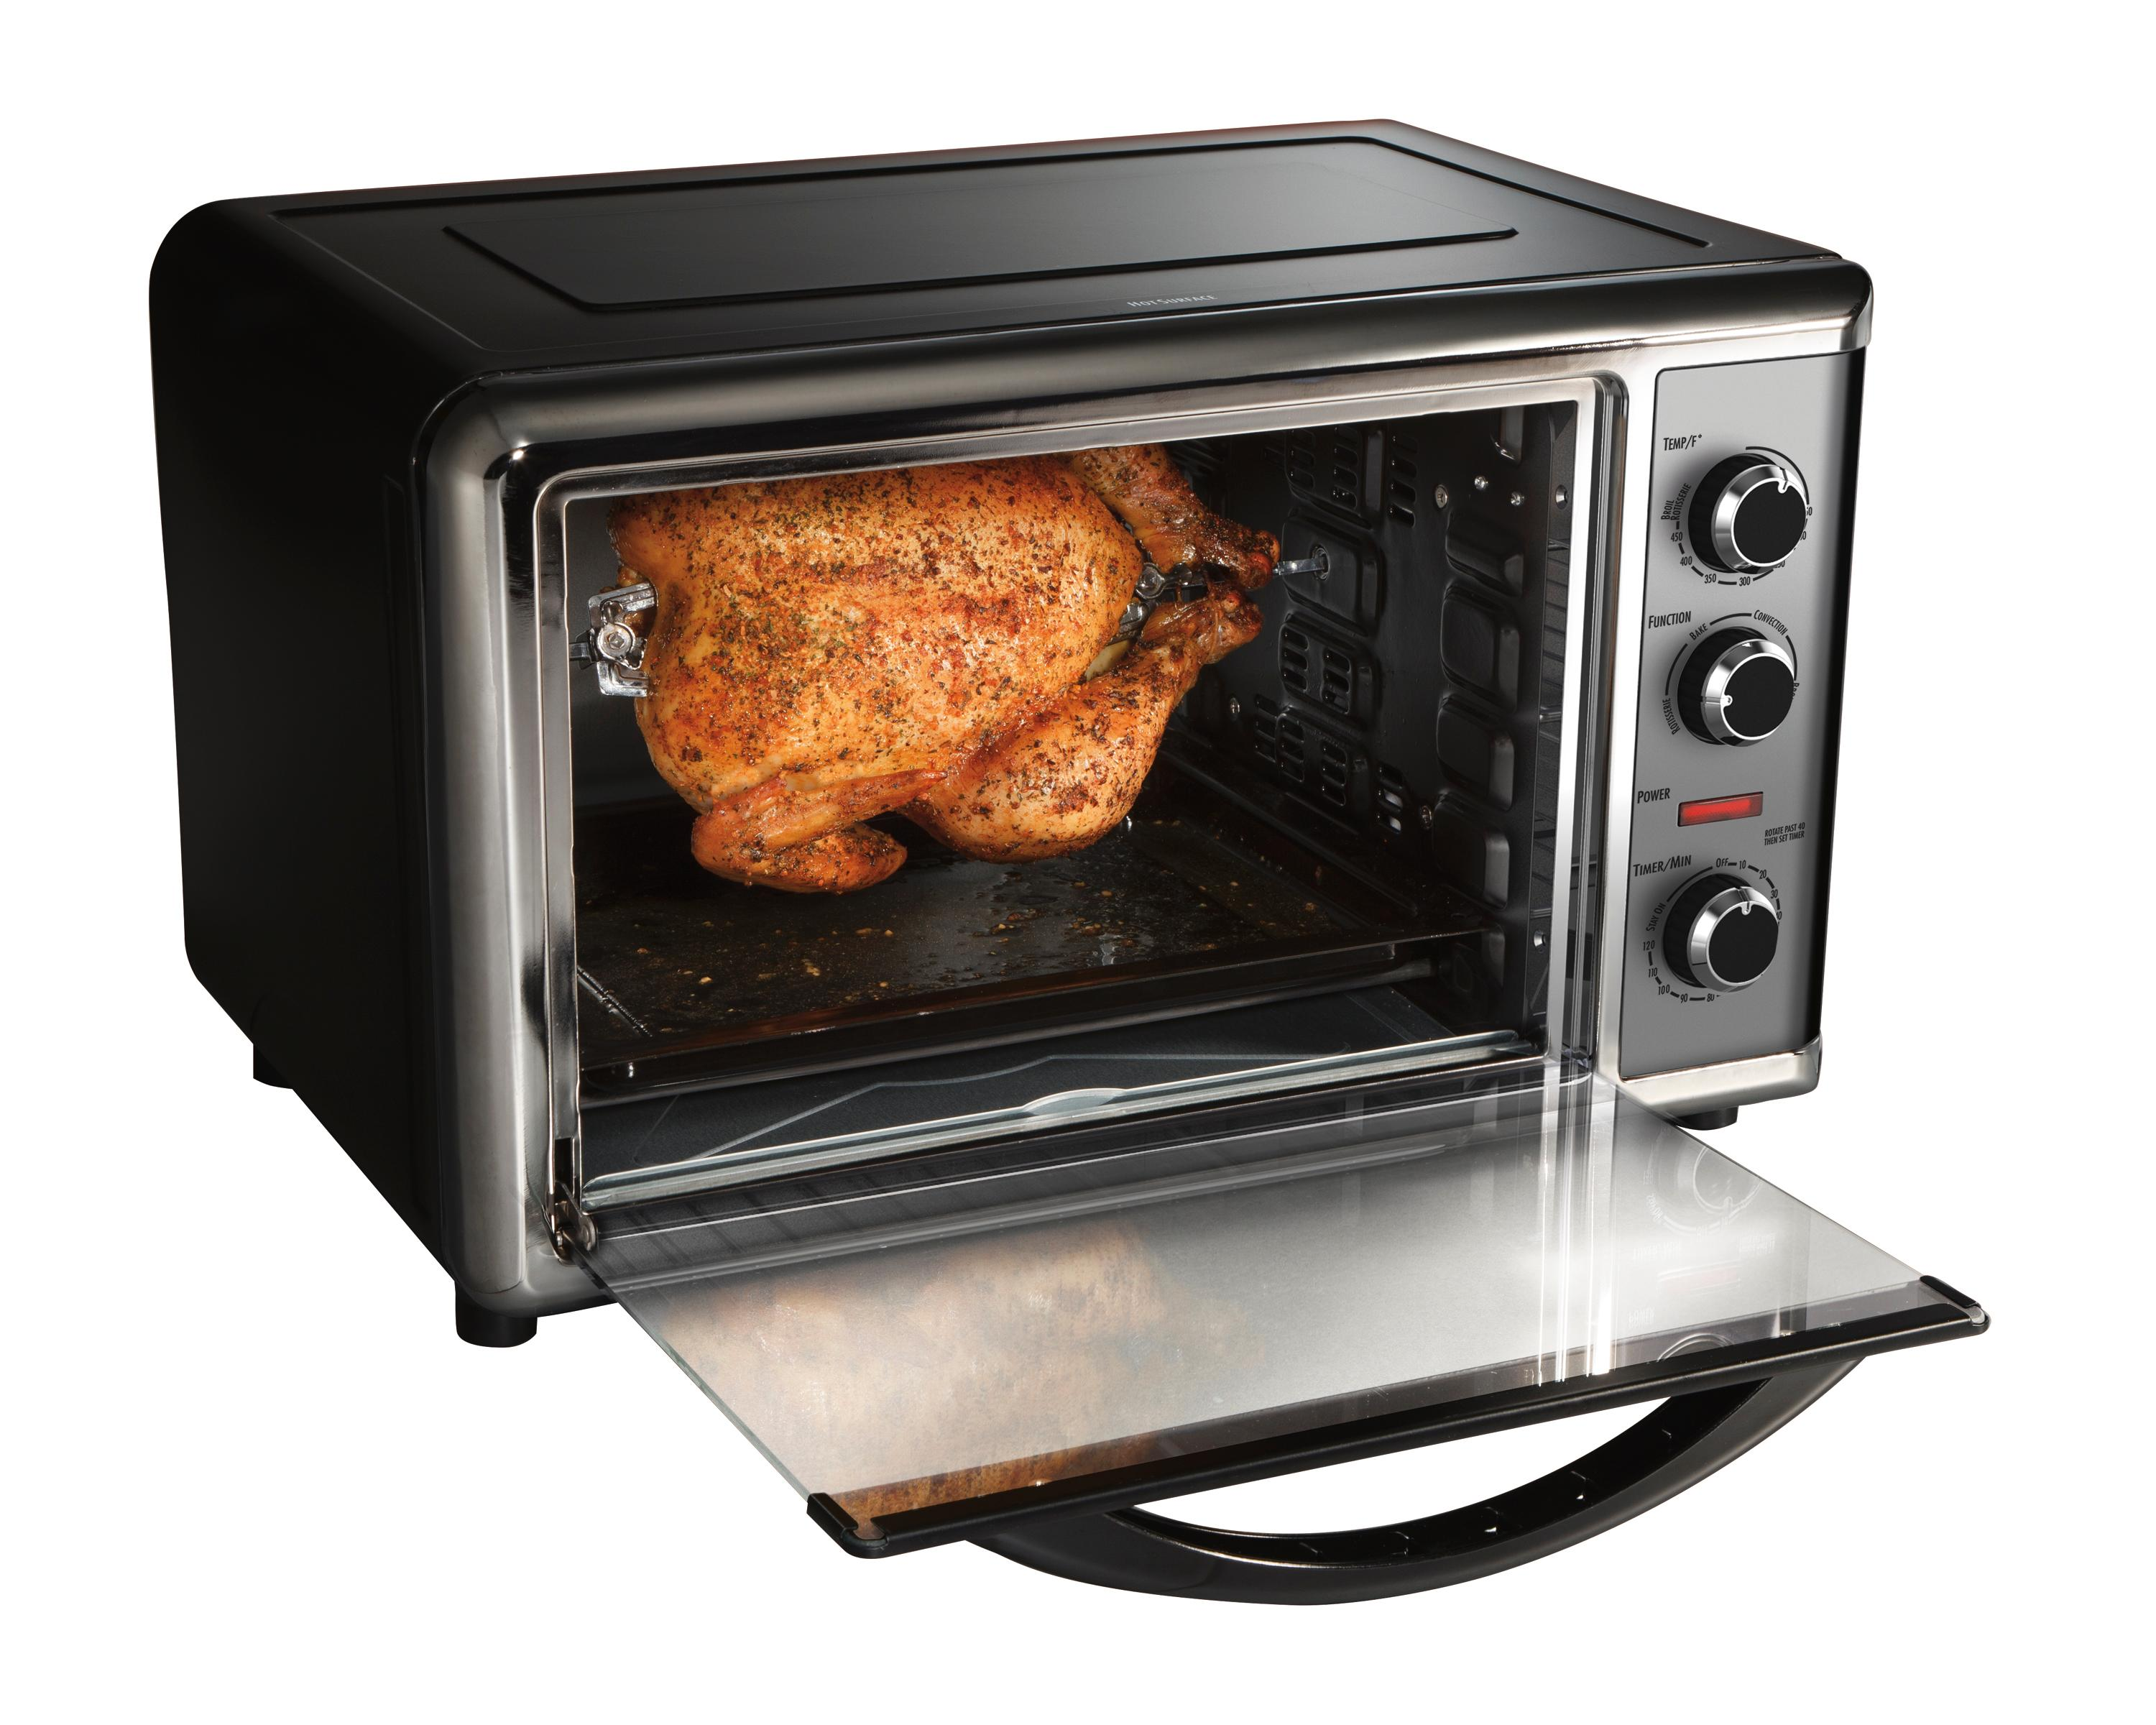 Countertop Commercial Convection Oven Commercial Pizza Oven Rotisserie Convection Toaster